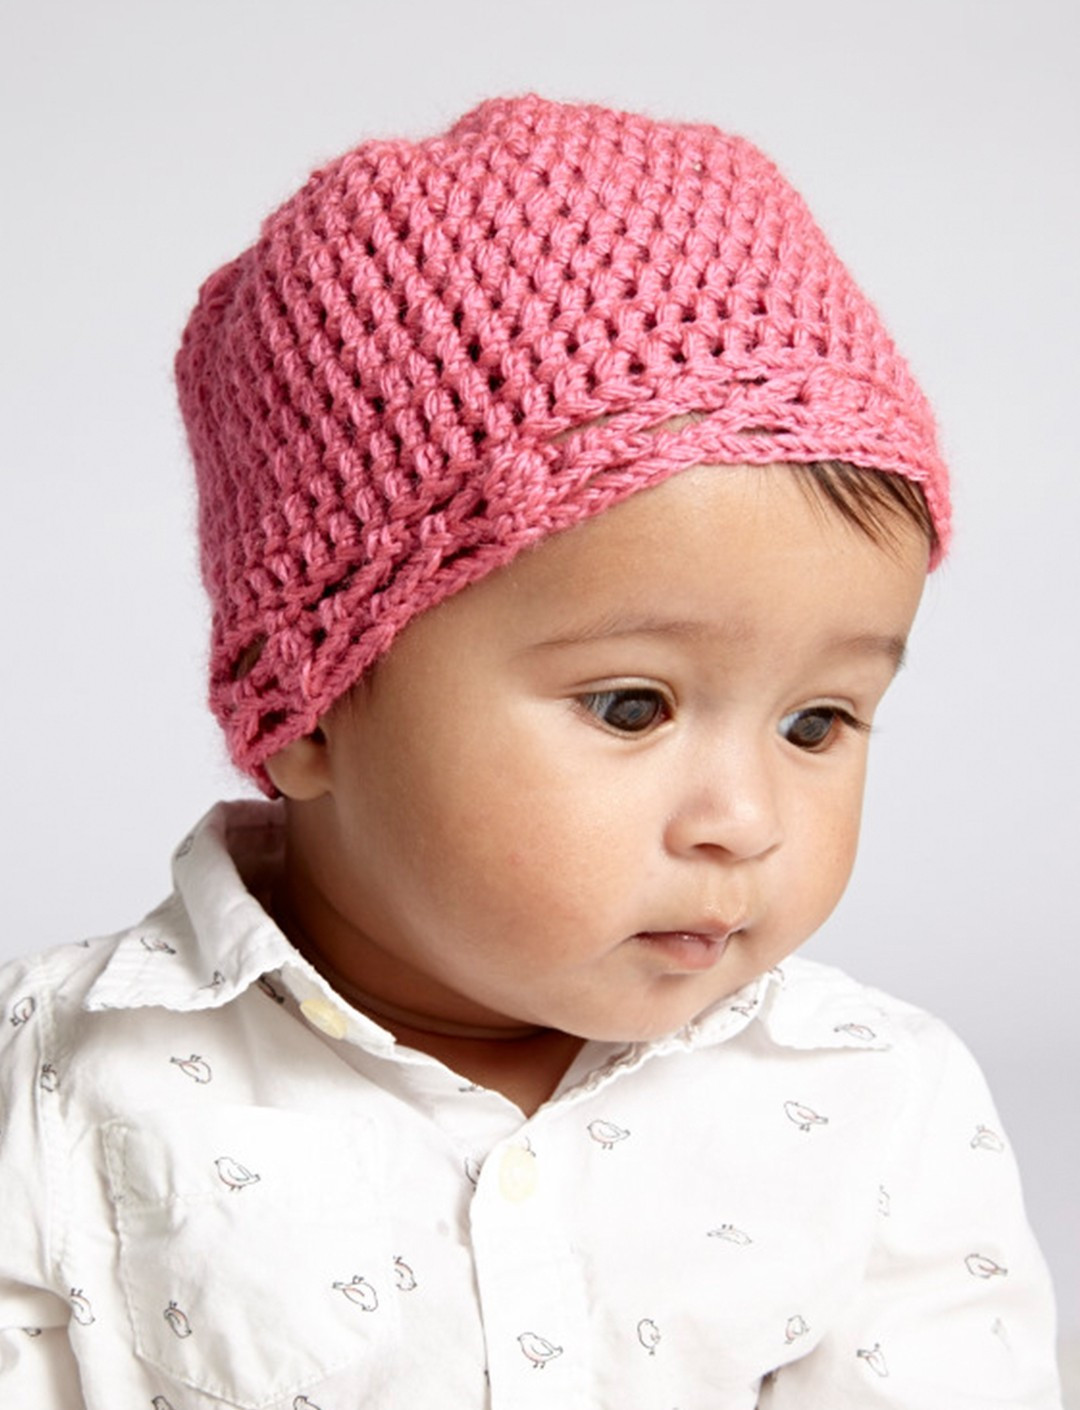 Best Of Bernat Crochet Baby Hat Crochet Pattern Free Crochet Infant Hat Patterns Of Luxury Baby Hat Crochet Pattern Modern Homemakers Free Crochet Infant Hat Patterns